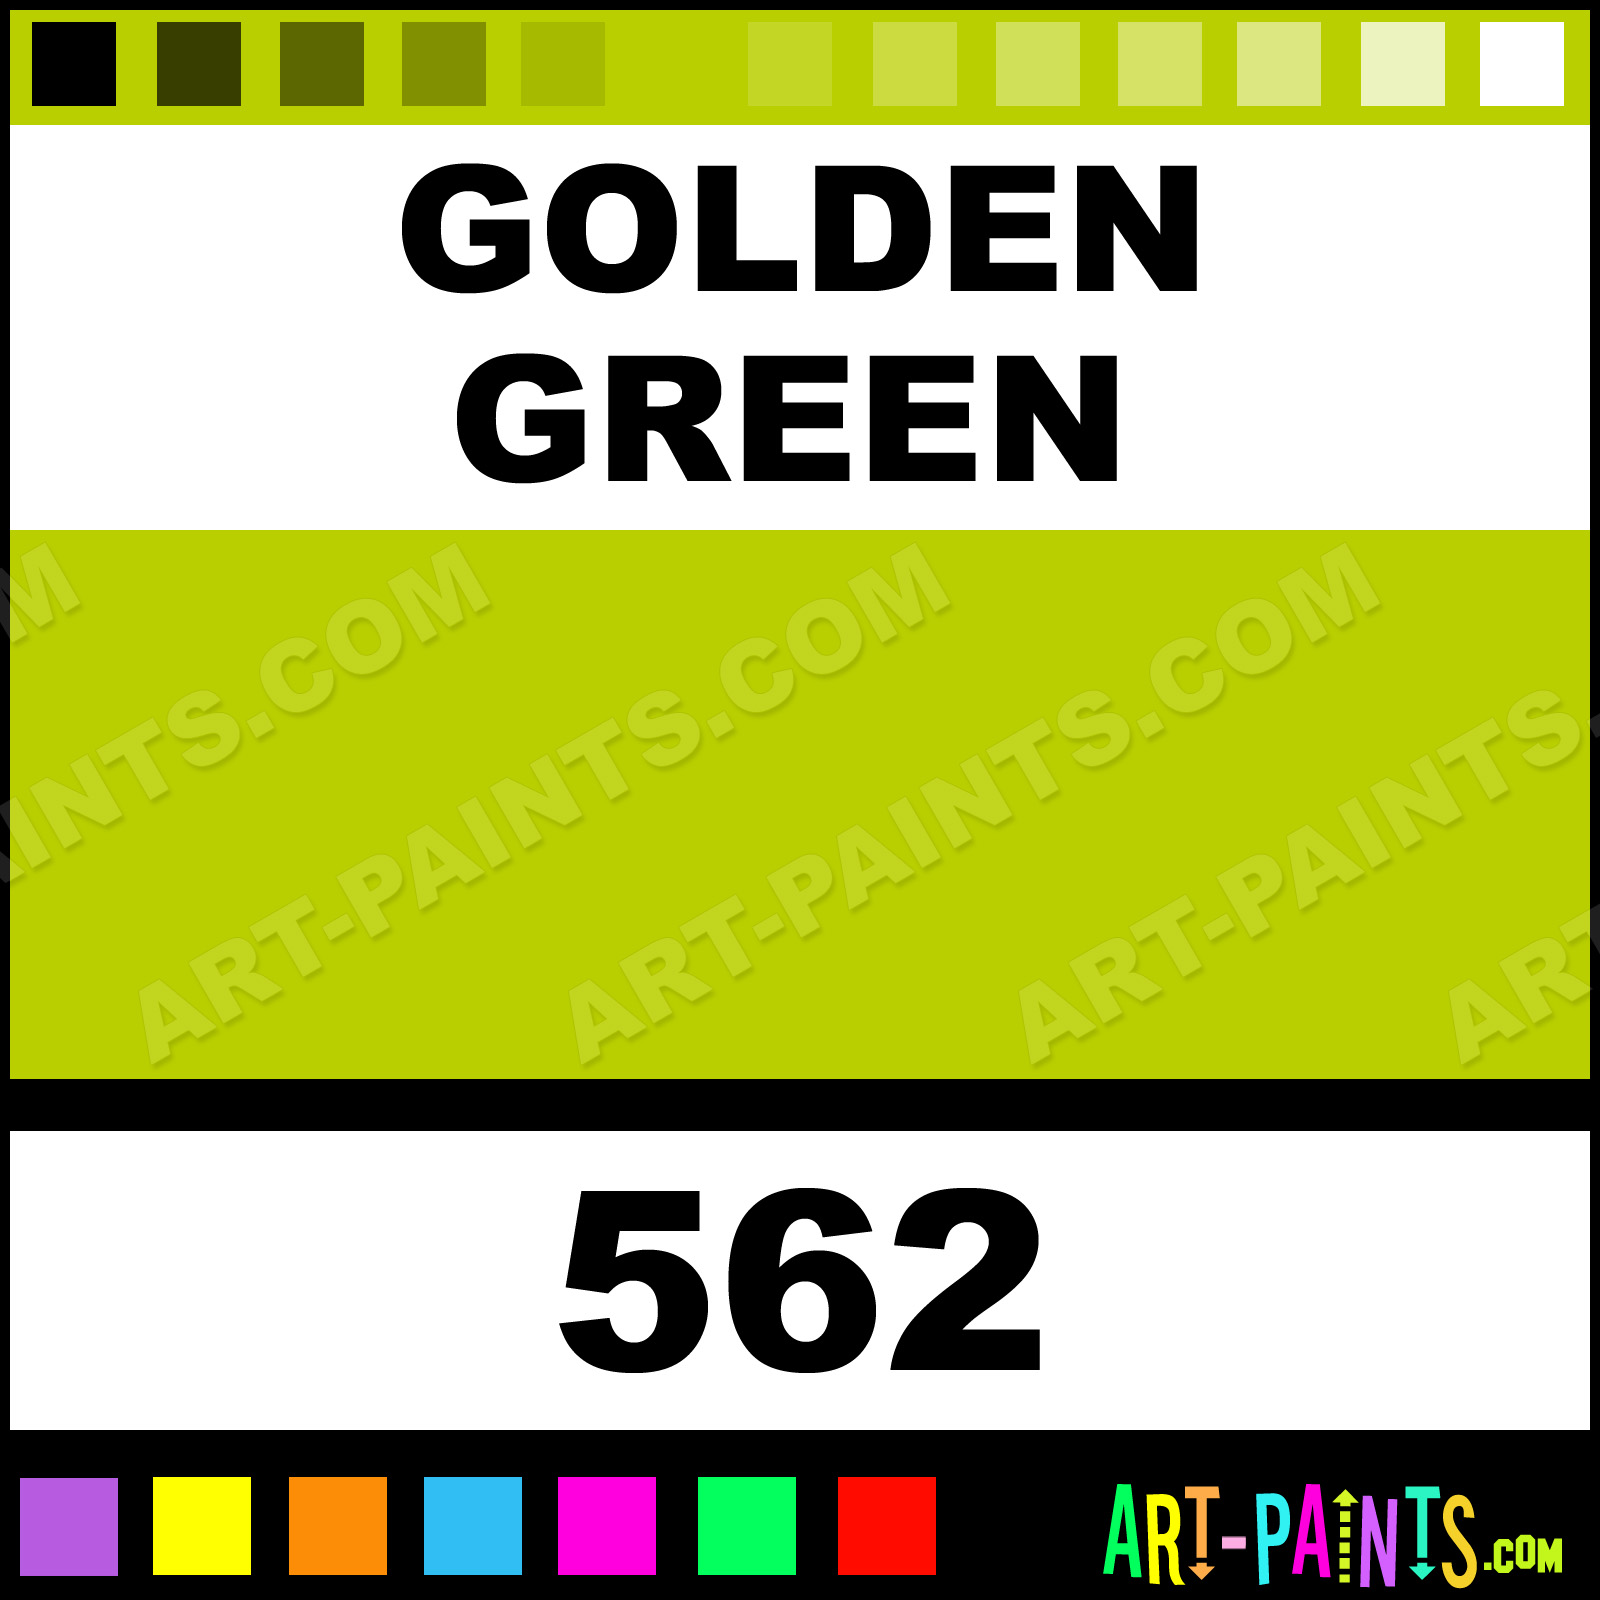 Golden green forex company